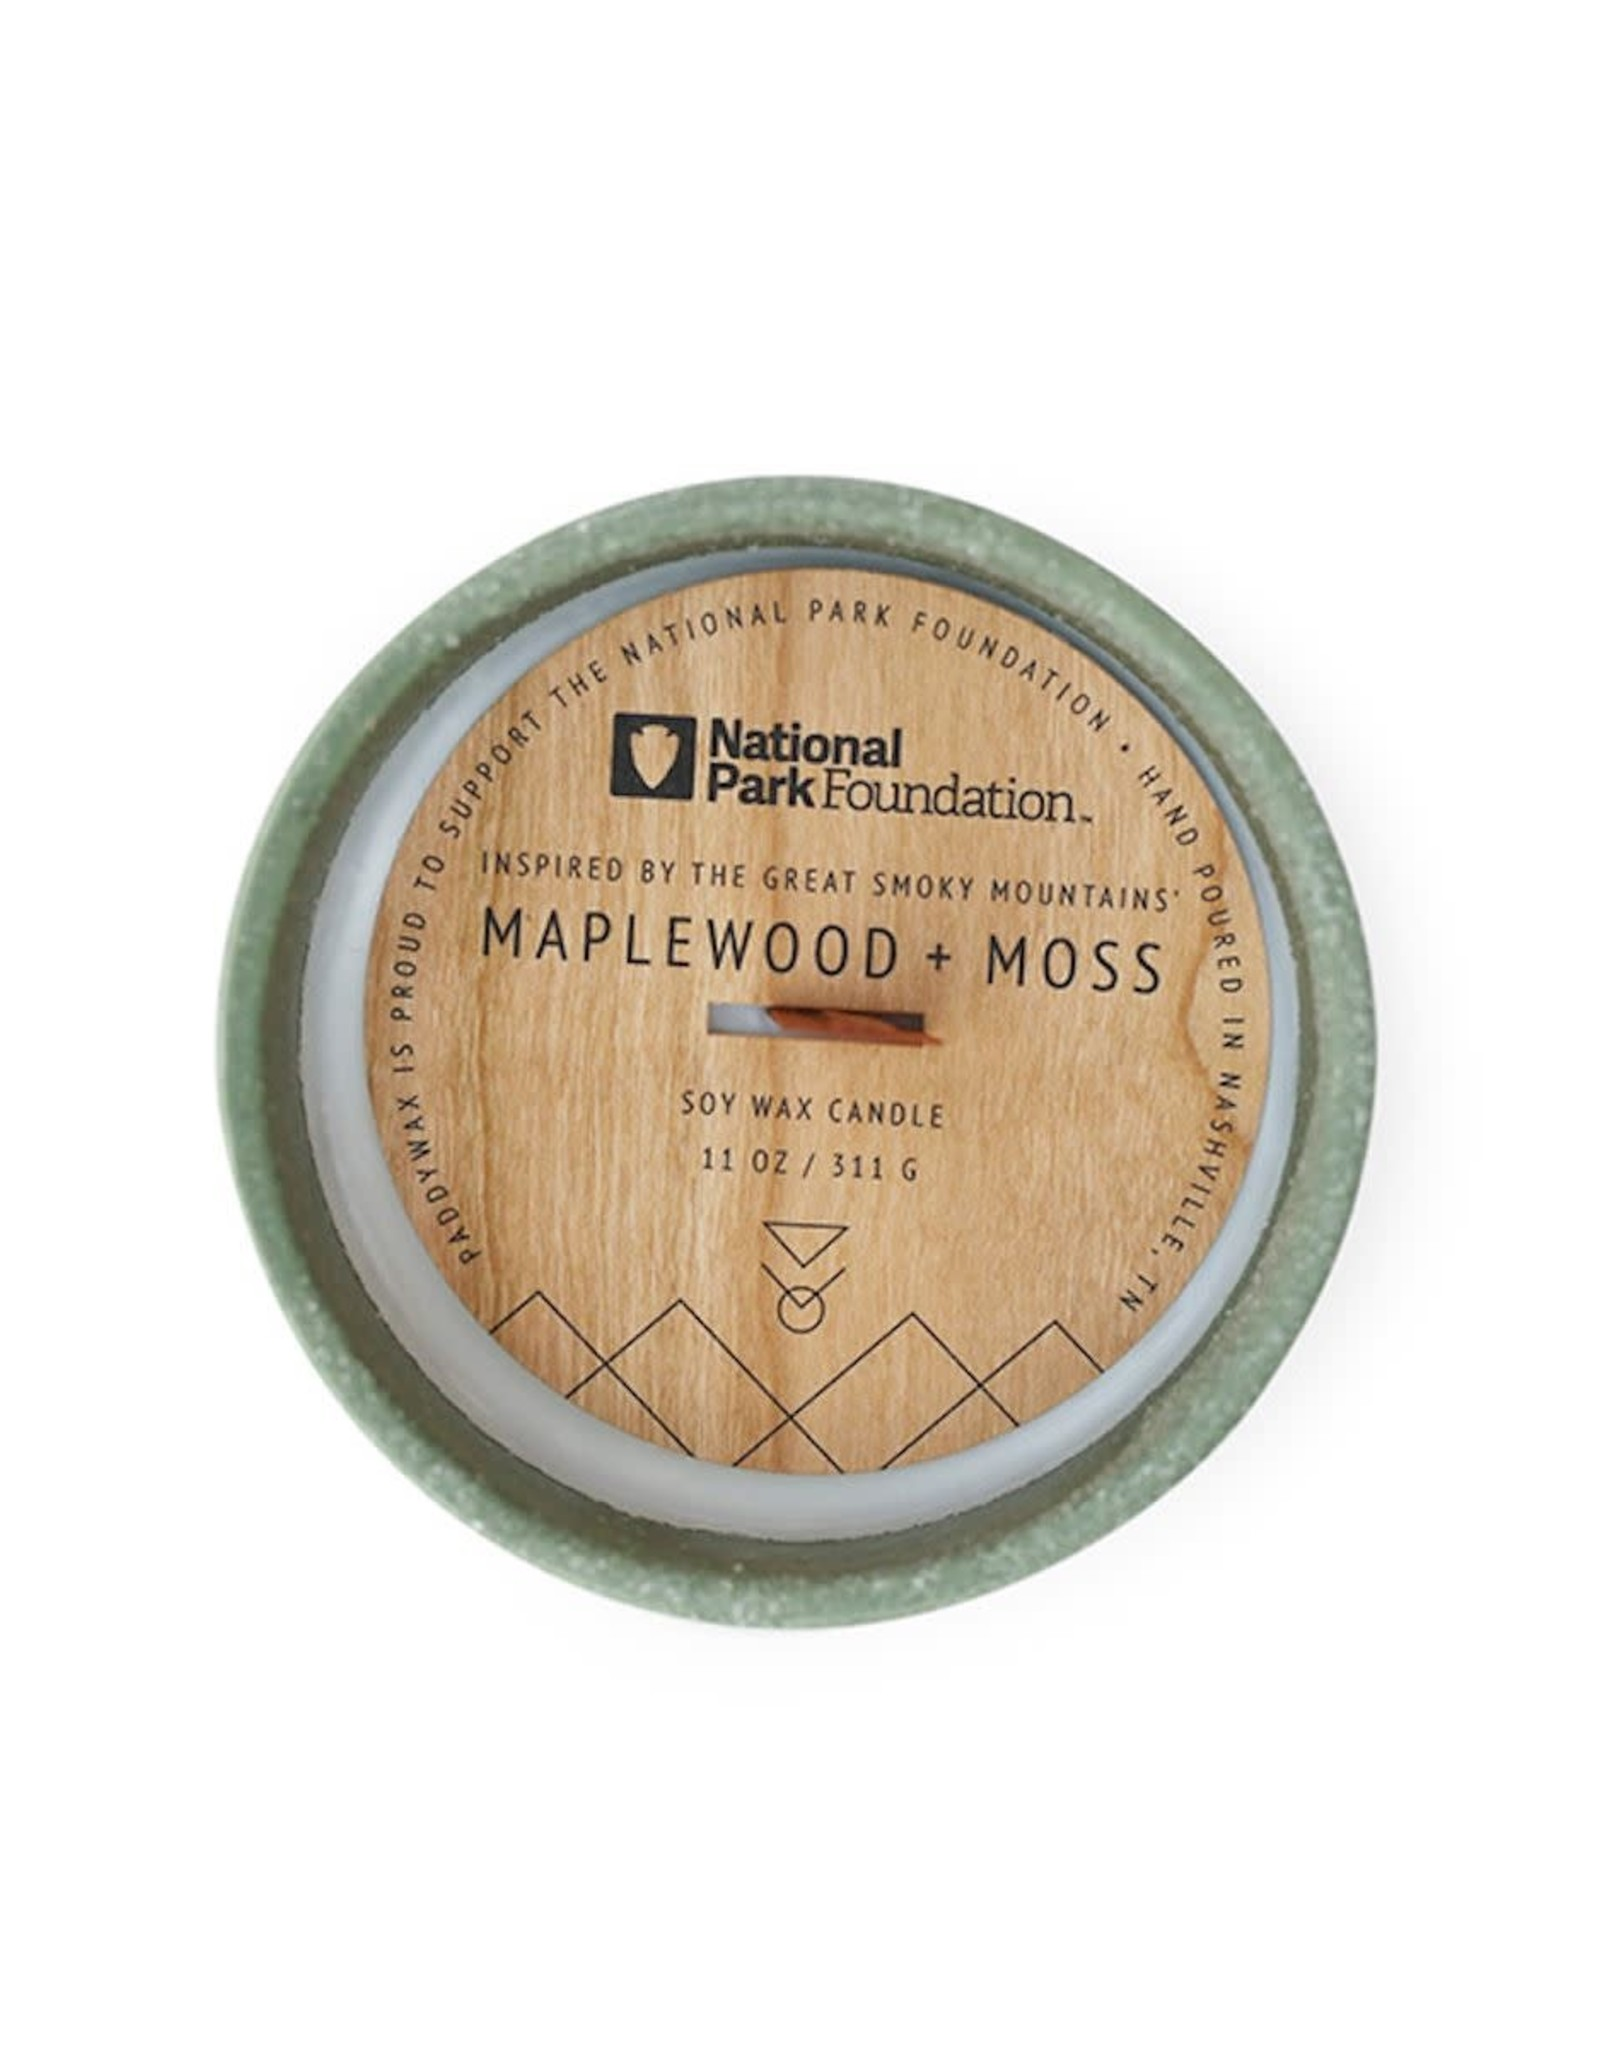 PADDYWAX CONTAINER CANDLE GREAT SMOKEY MOUNTAINS MAPLEWOOD AND MOSS 11 OZ